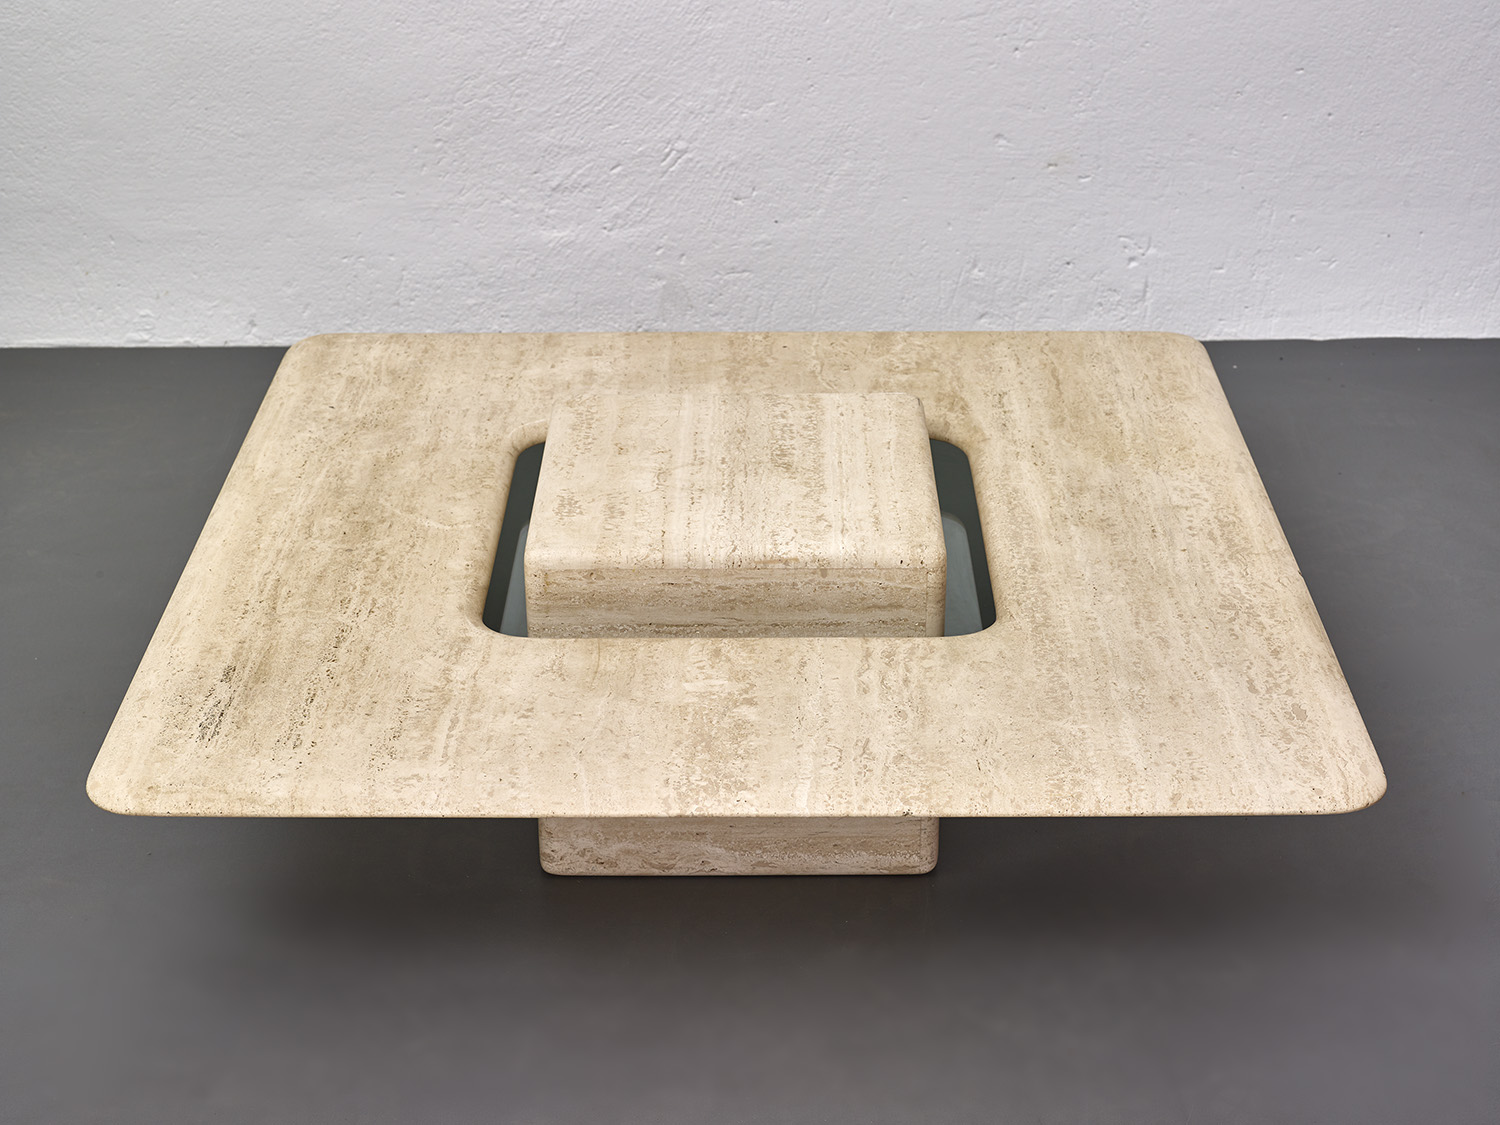 italian-travertine-coffee-table-with-floating-top-1970-1980-image-01